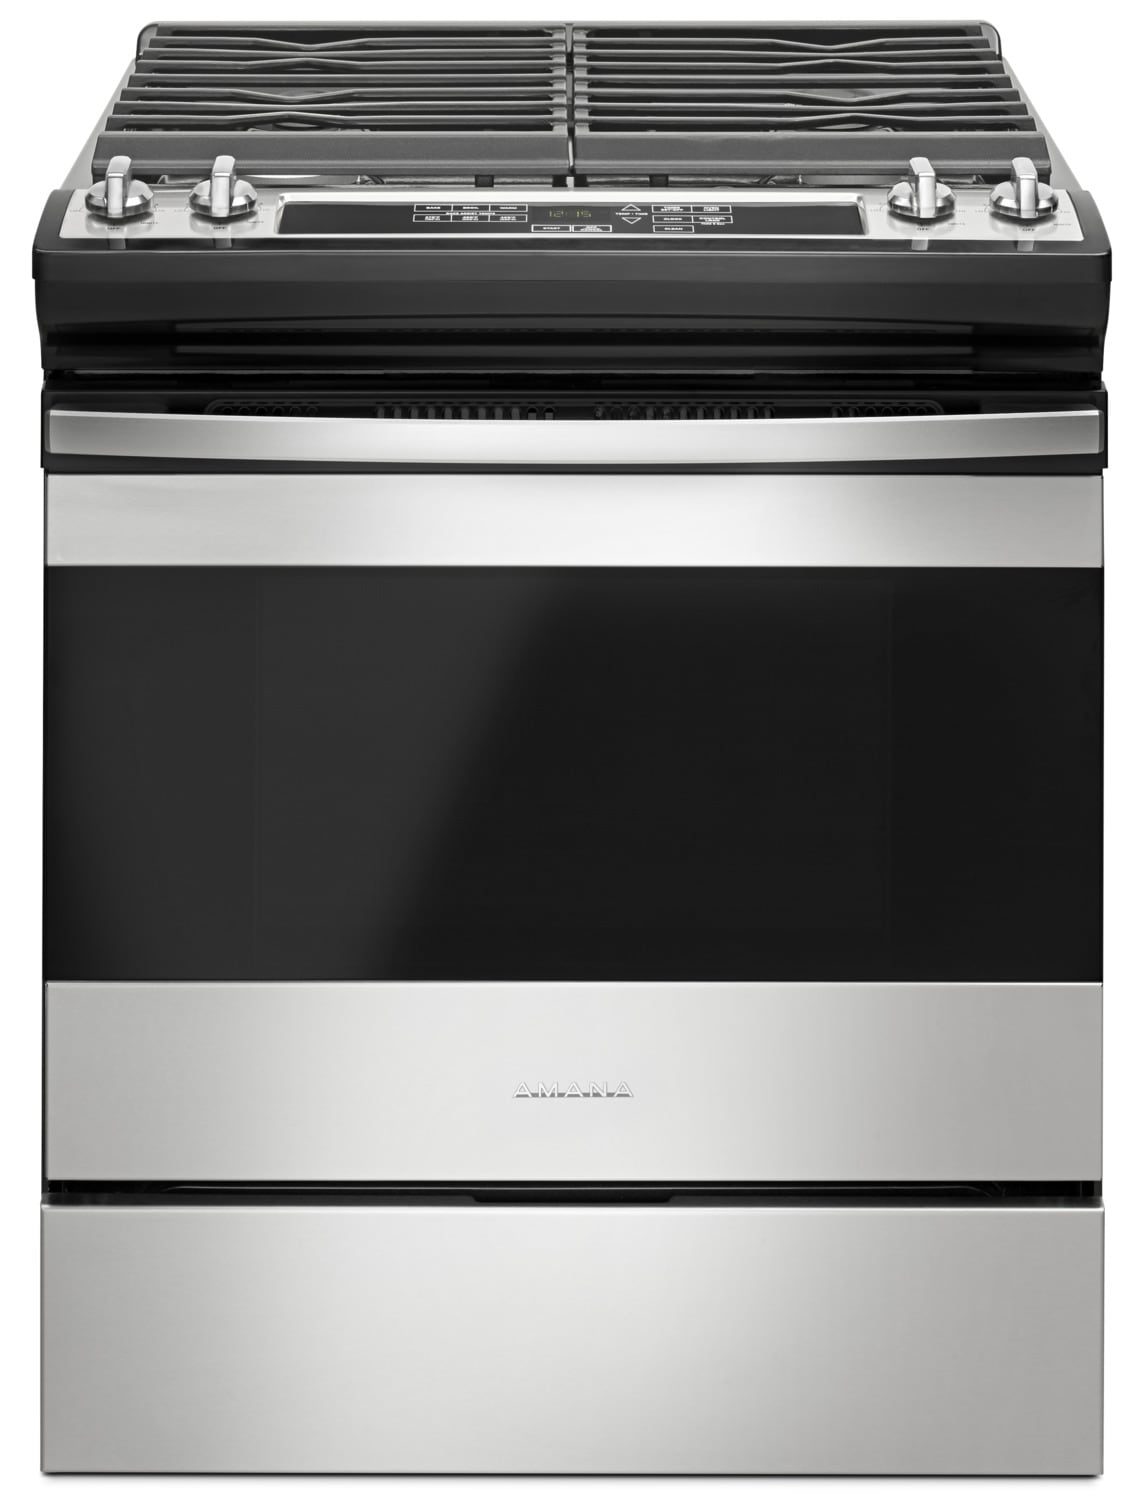 Whirlpool white ice appliances best buy - Amana 5 0 Cu Ft Slide In Gas Range Ags6603sfs